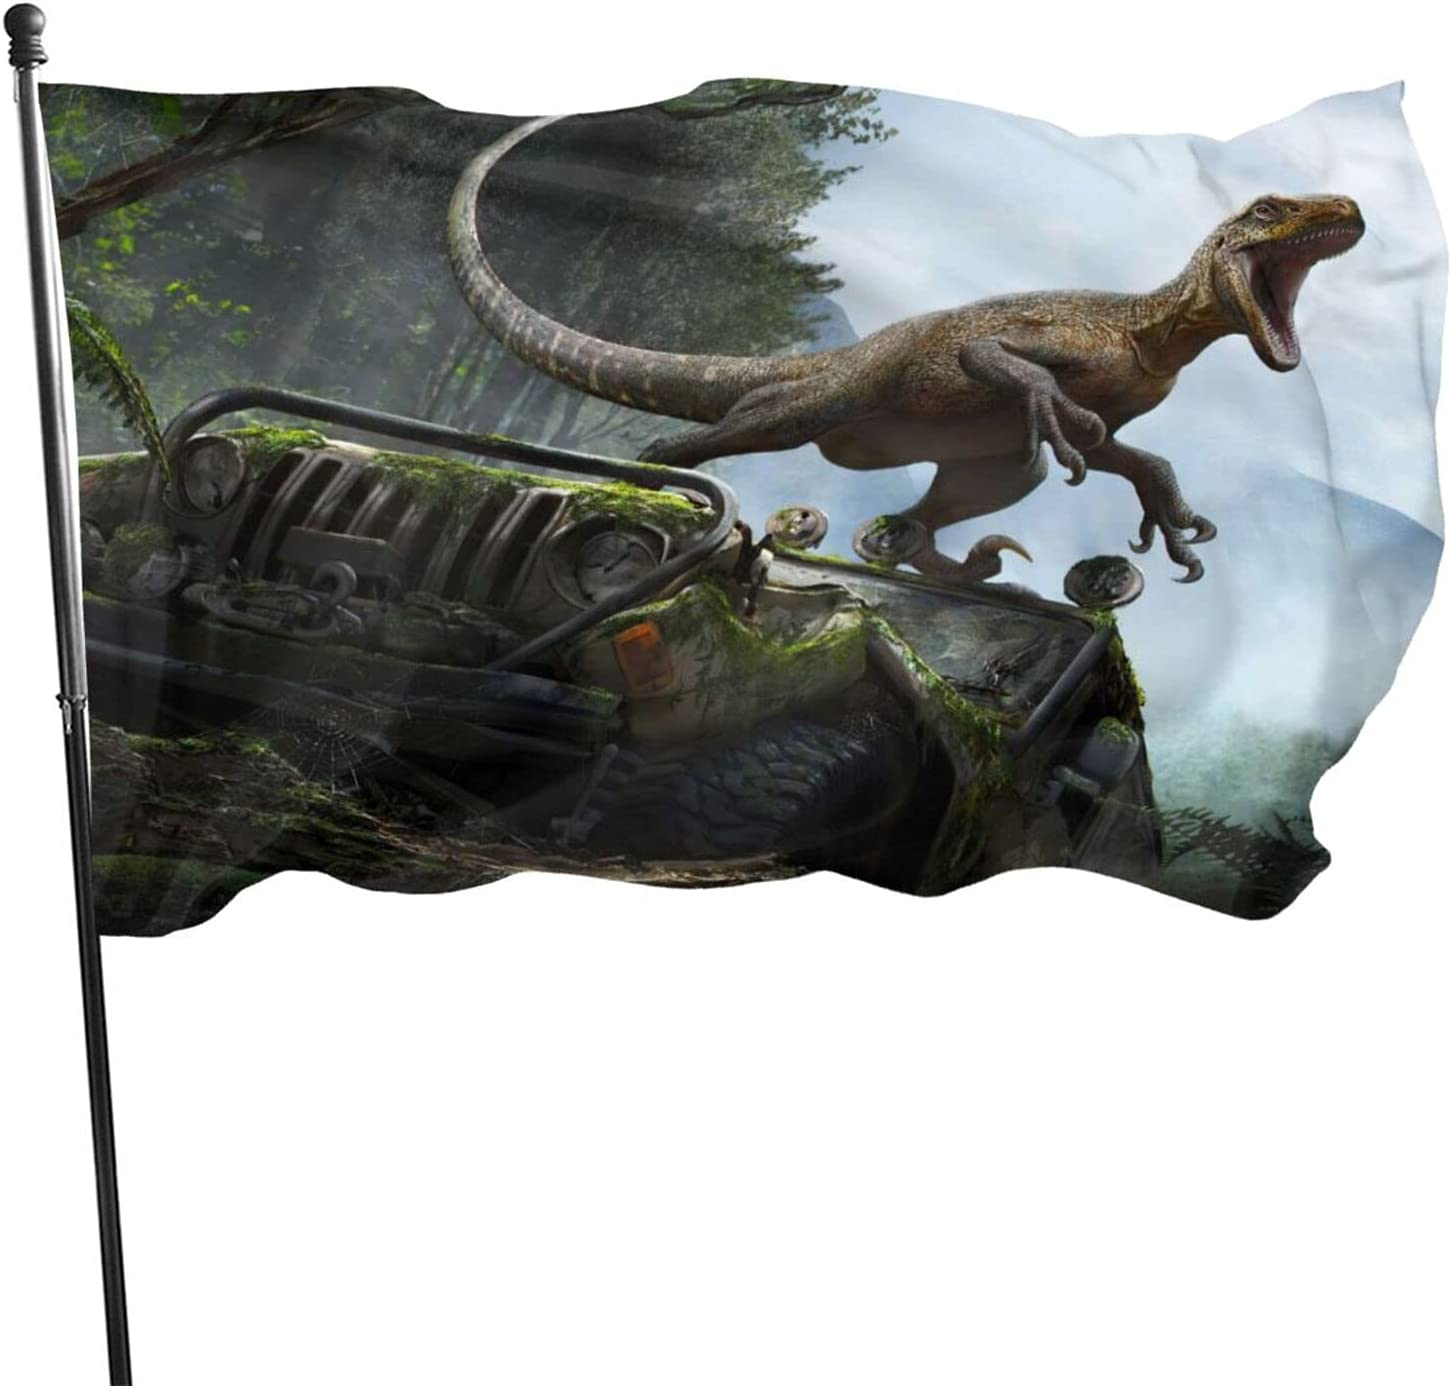 JimmySaechao Jurassic Park Flag 3x5 Ft Decor Wall Banner Poster Garden Banner Decorative Outdoor Indoor Fashion Banner Flag for College Dorm Room Decor Outdoor Parties Gift Tailgates Flags